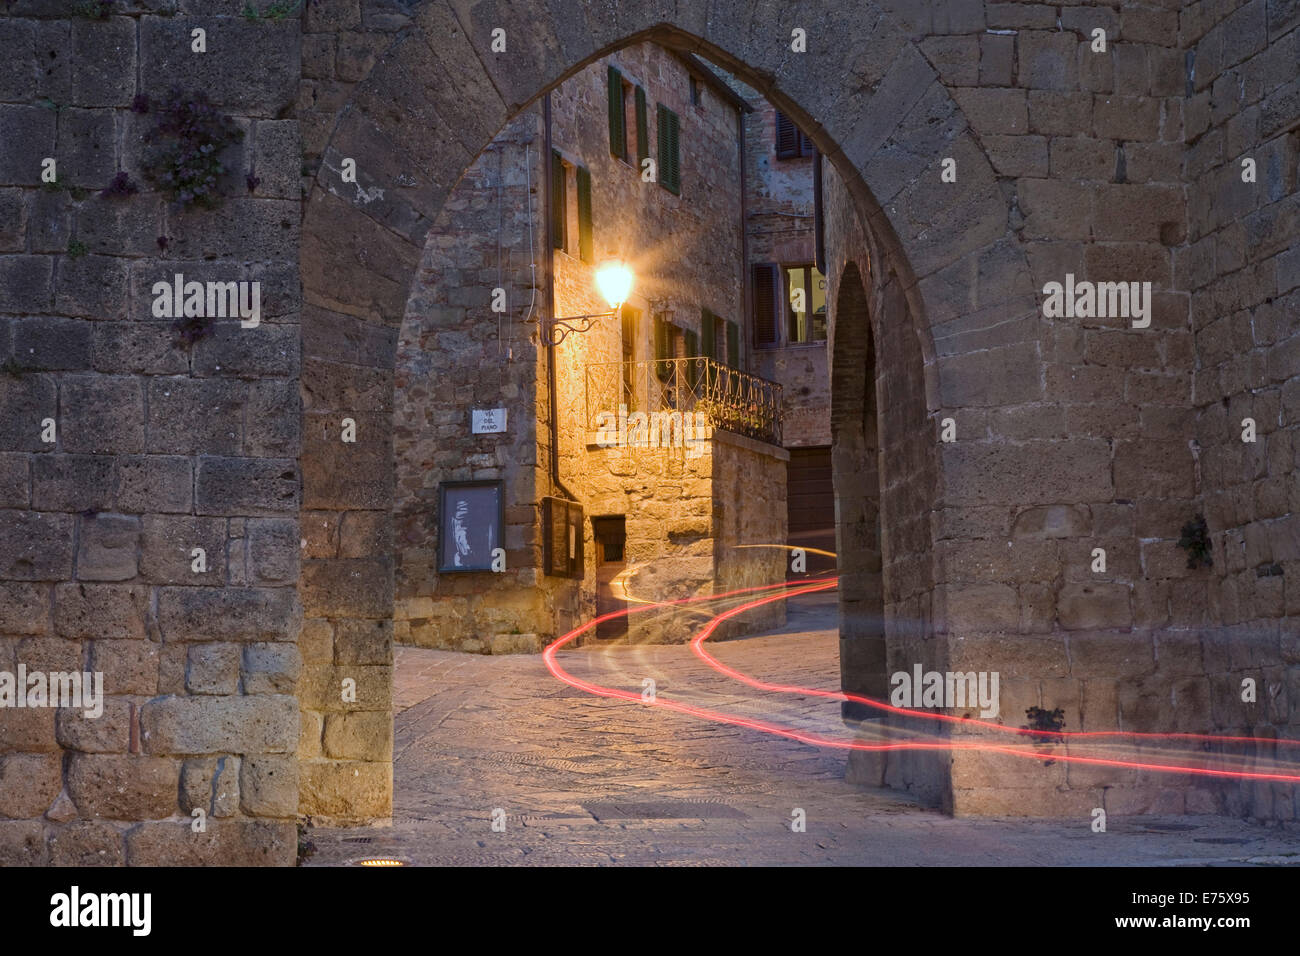 City gate with the light trace of a passing car, Monticchiello, Val d'Orcia region, Province of Siena, Tuscany, - Stock Image